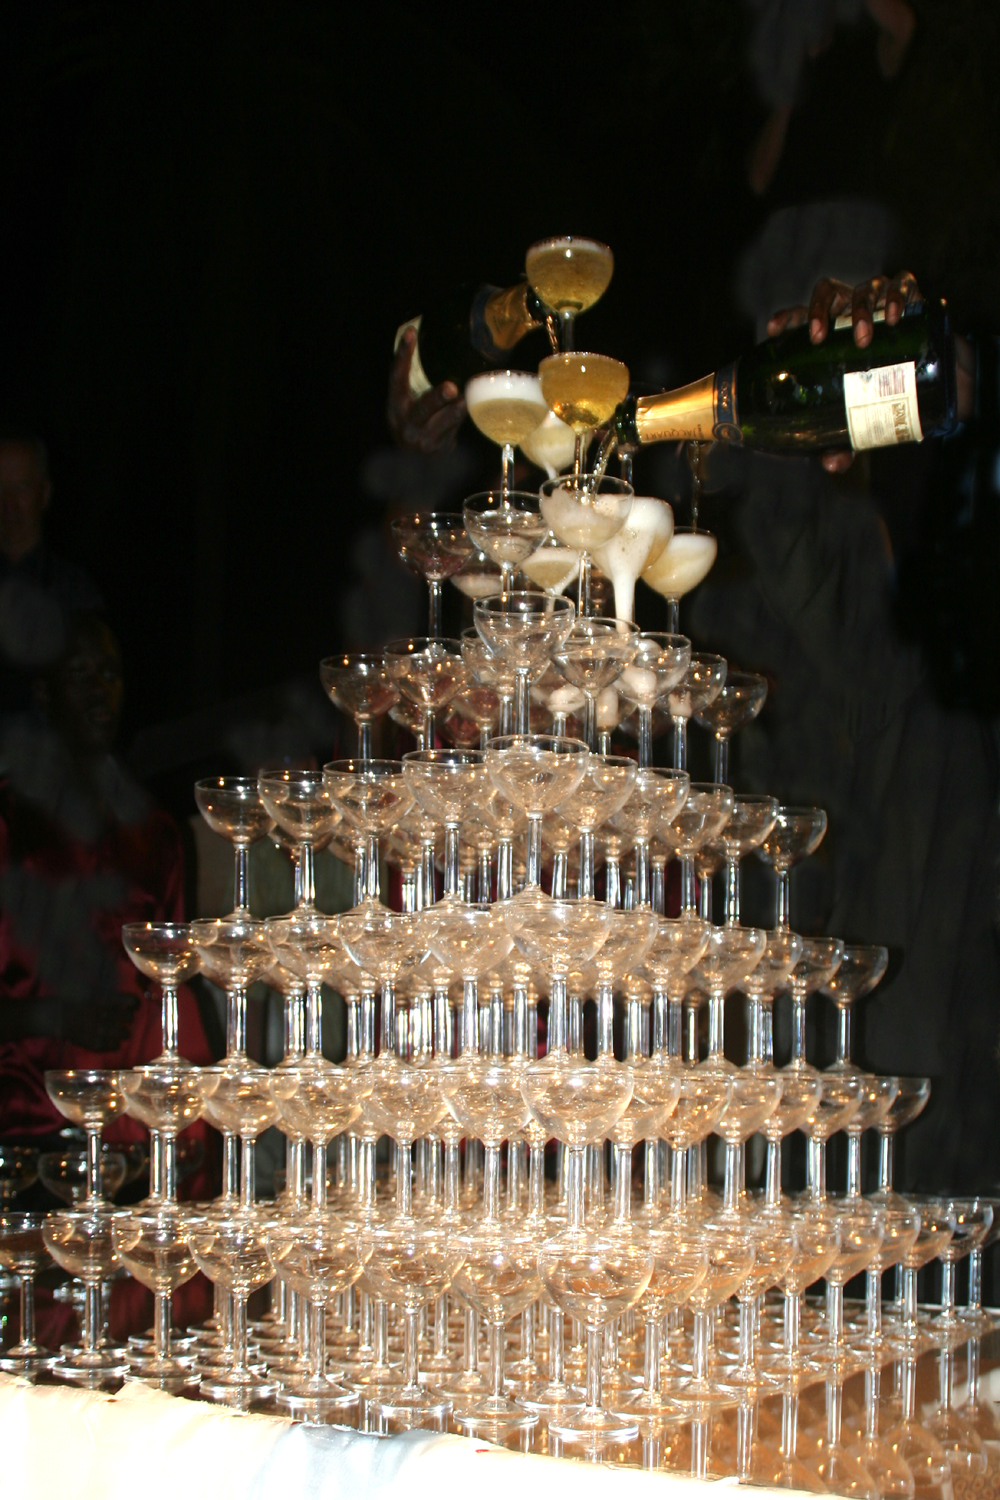 Champagne Party Decorations Rumahblog Wallpaper